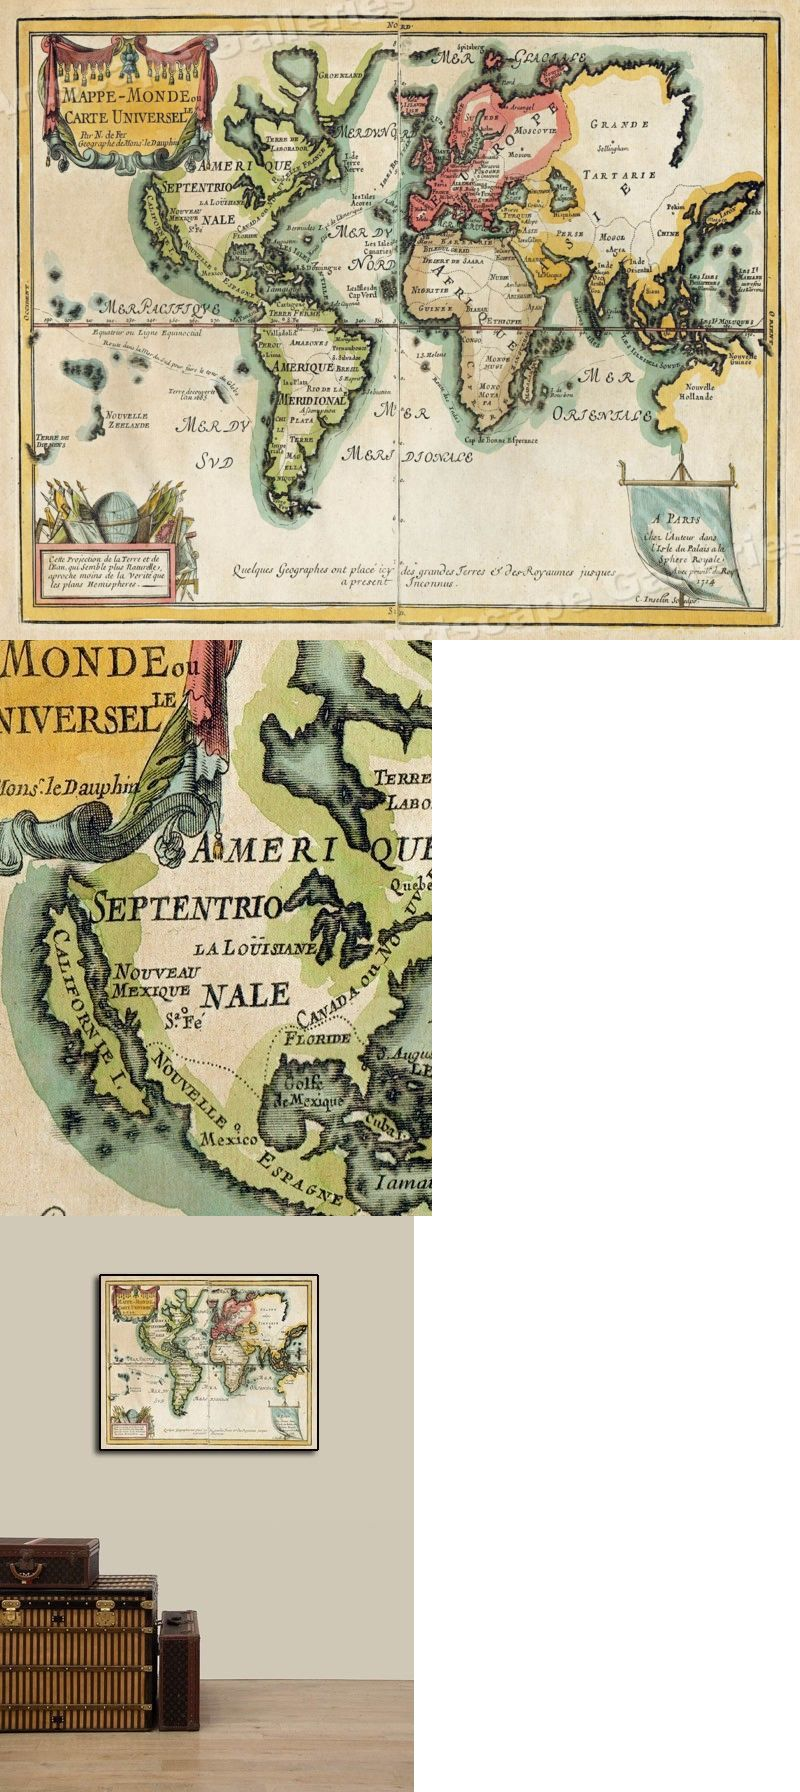 Details About World Map 1705 Vintage Style Decorative Historical Map 16x20 Historical Maps Wall Maps Vintage World Maps